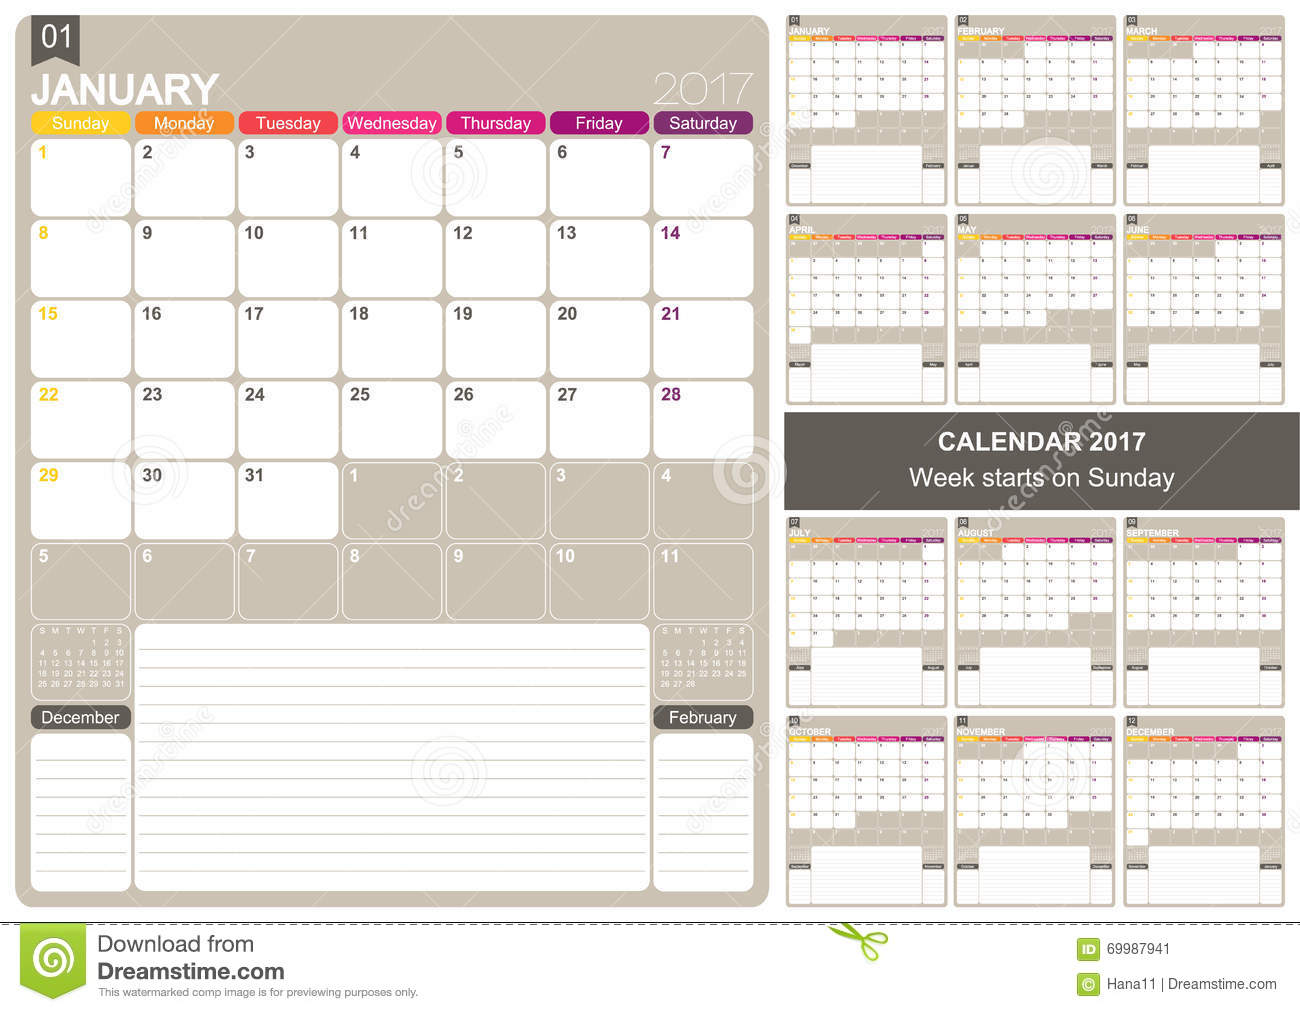 English printable monthly calendar template, set of 12 months January ...